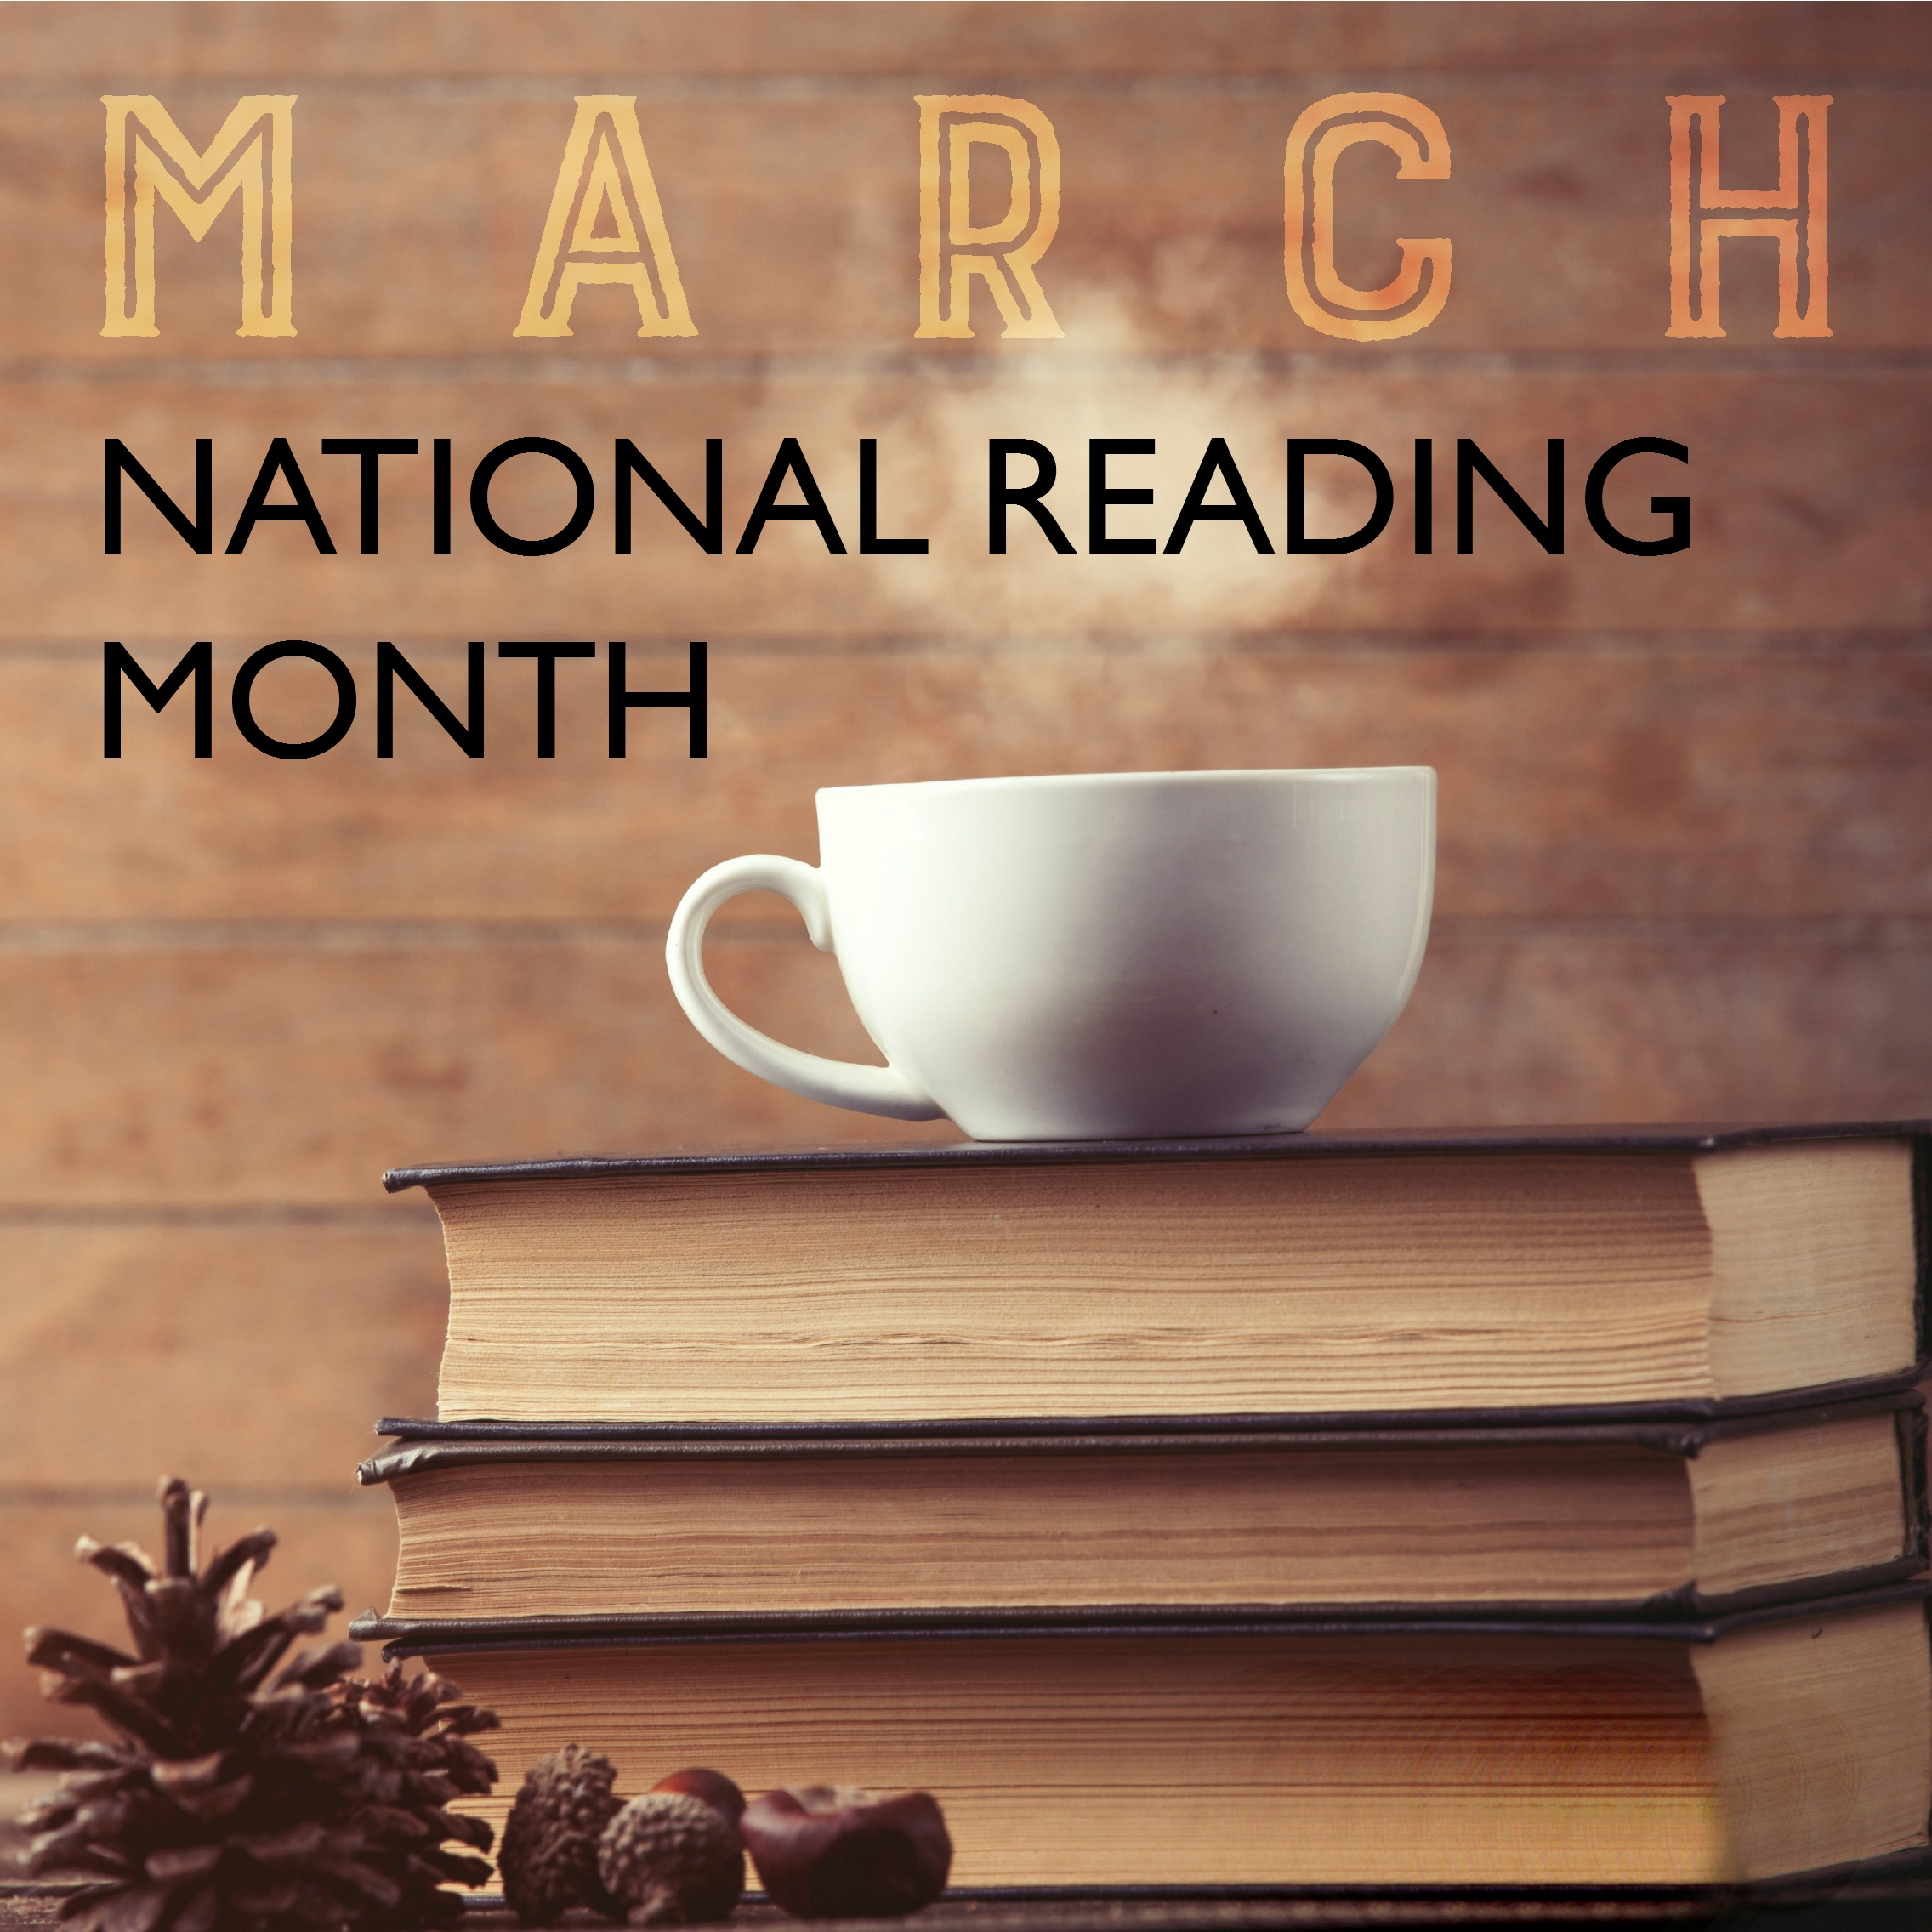 National Reading Month: On My Bookshelf